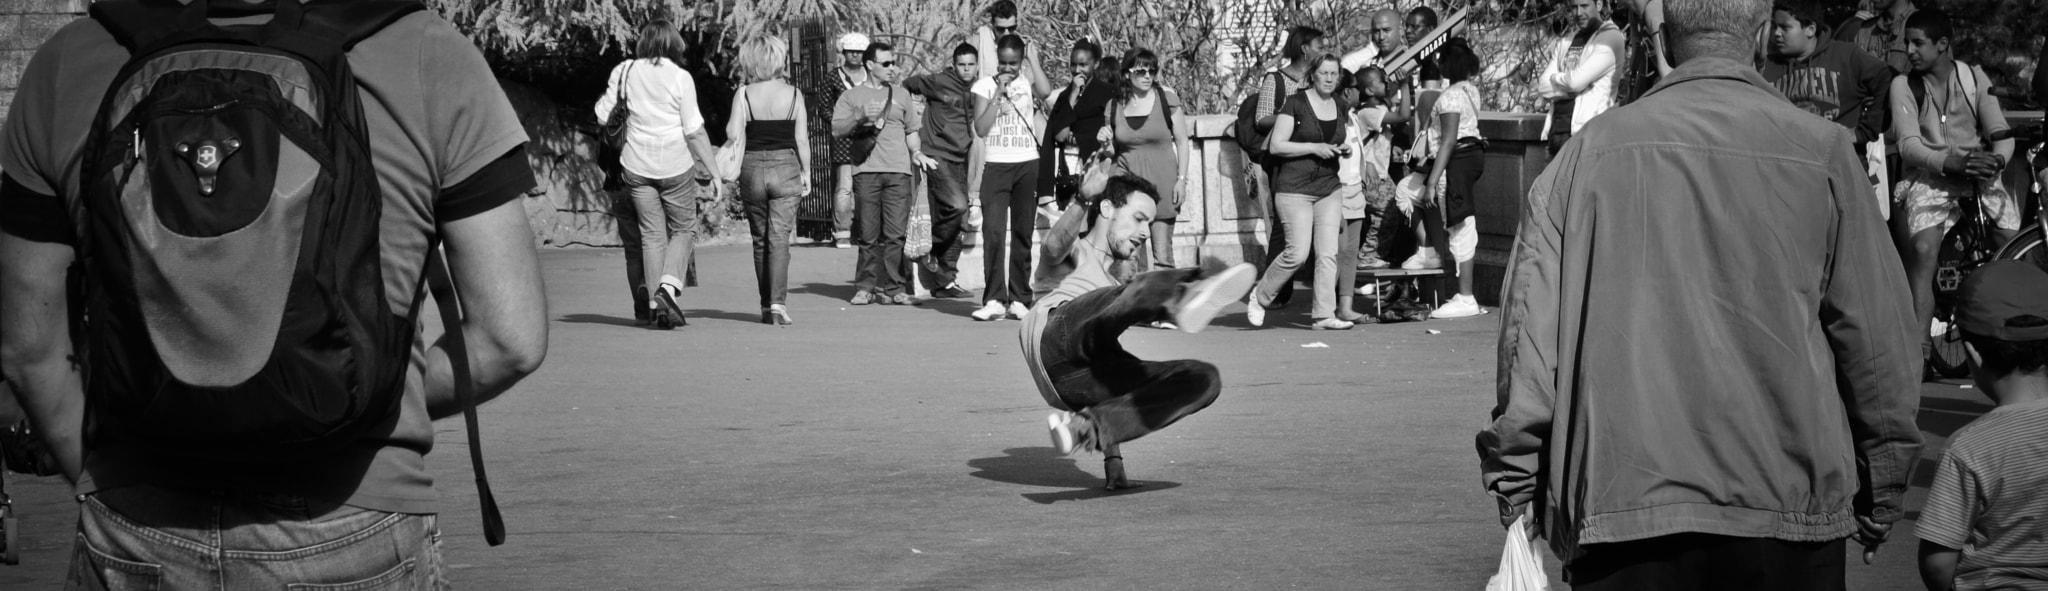 Photograph Breakdance by Yaniv Azoulay on 500px